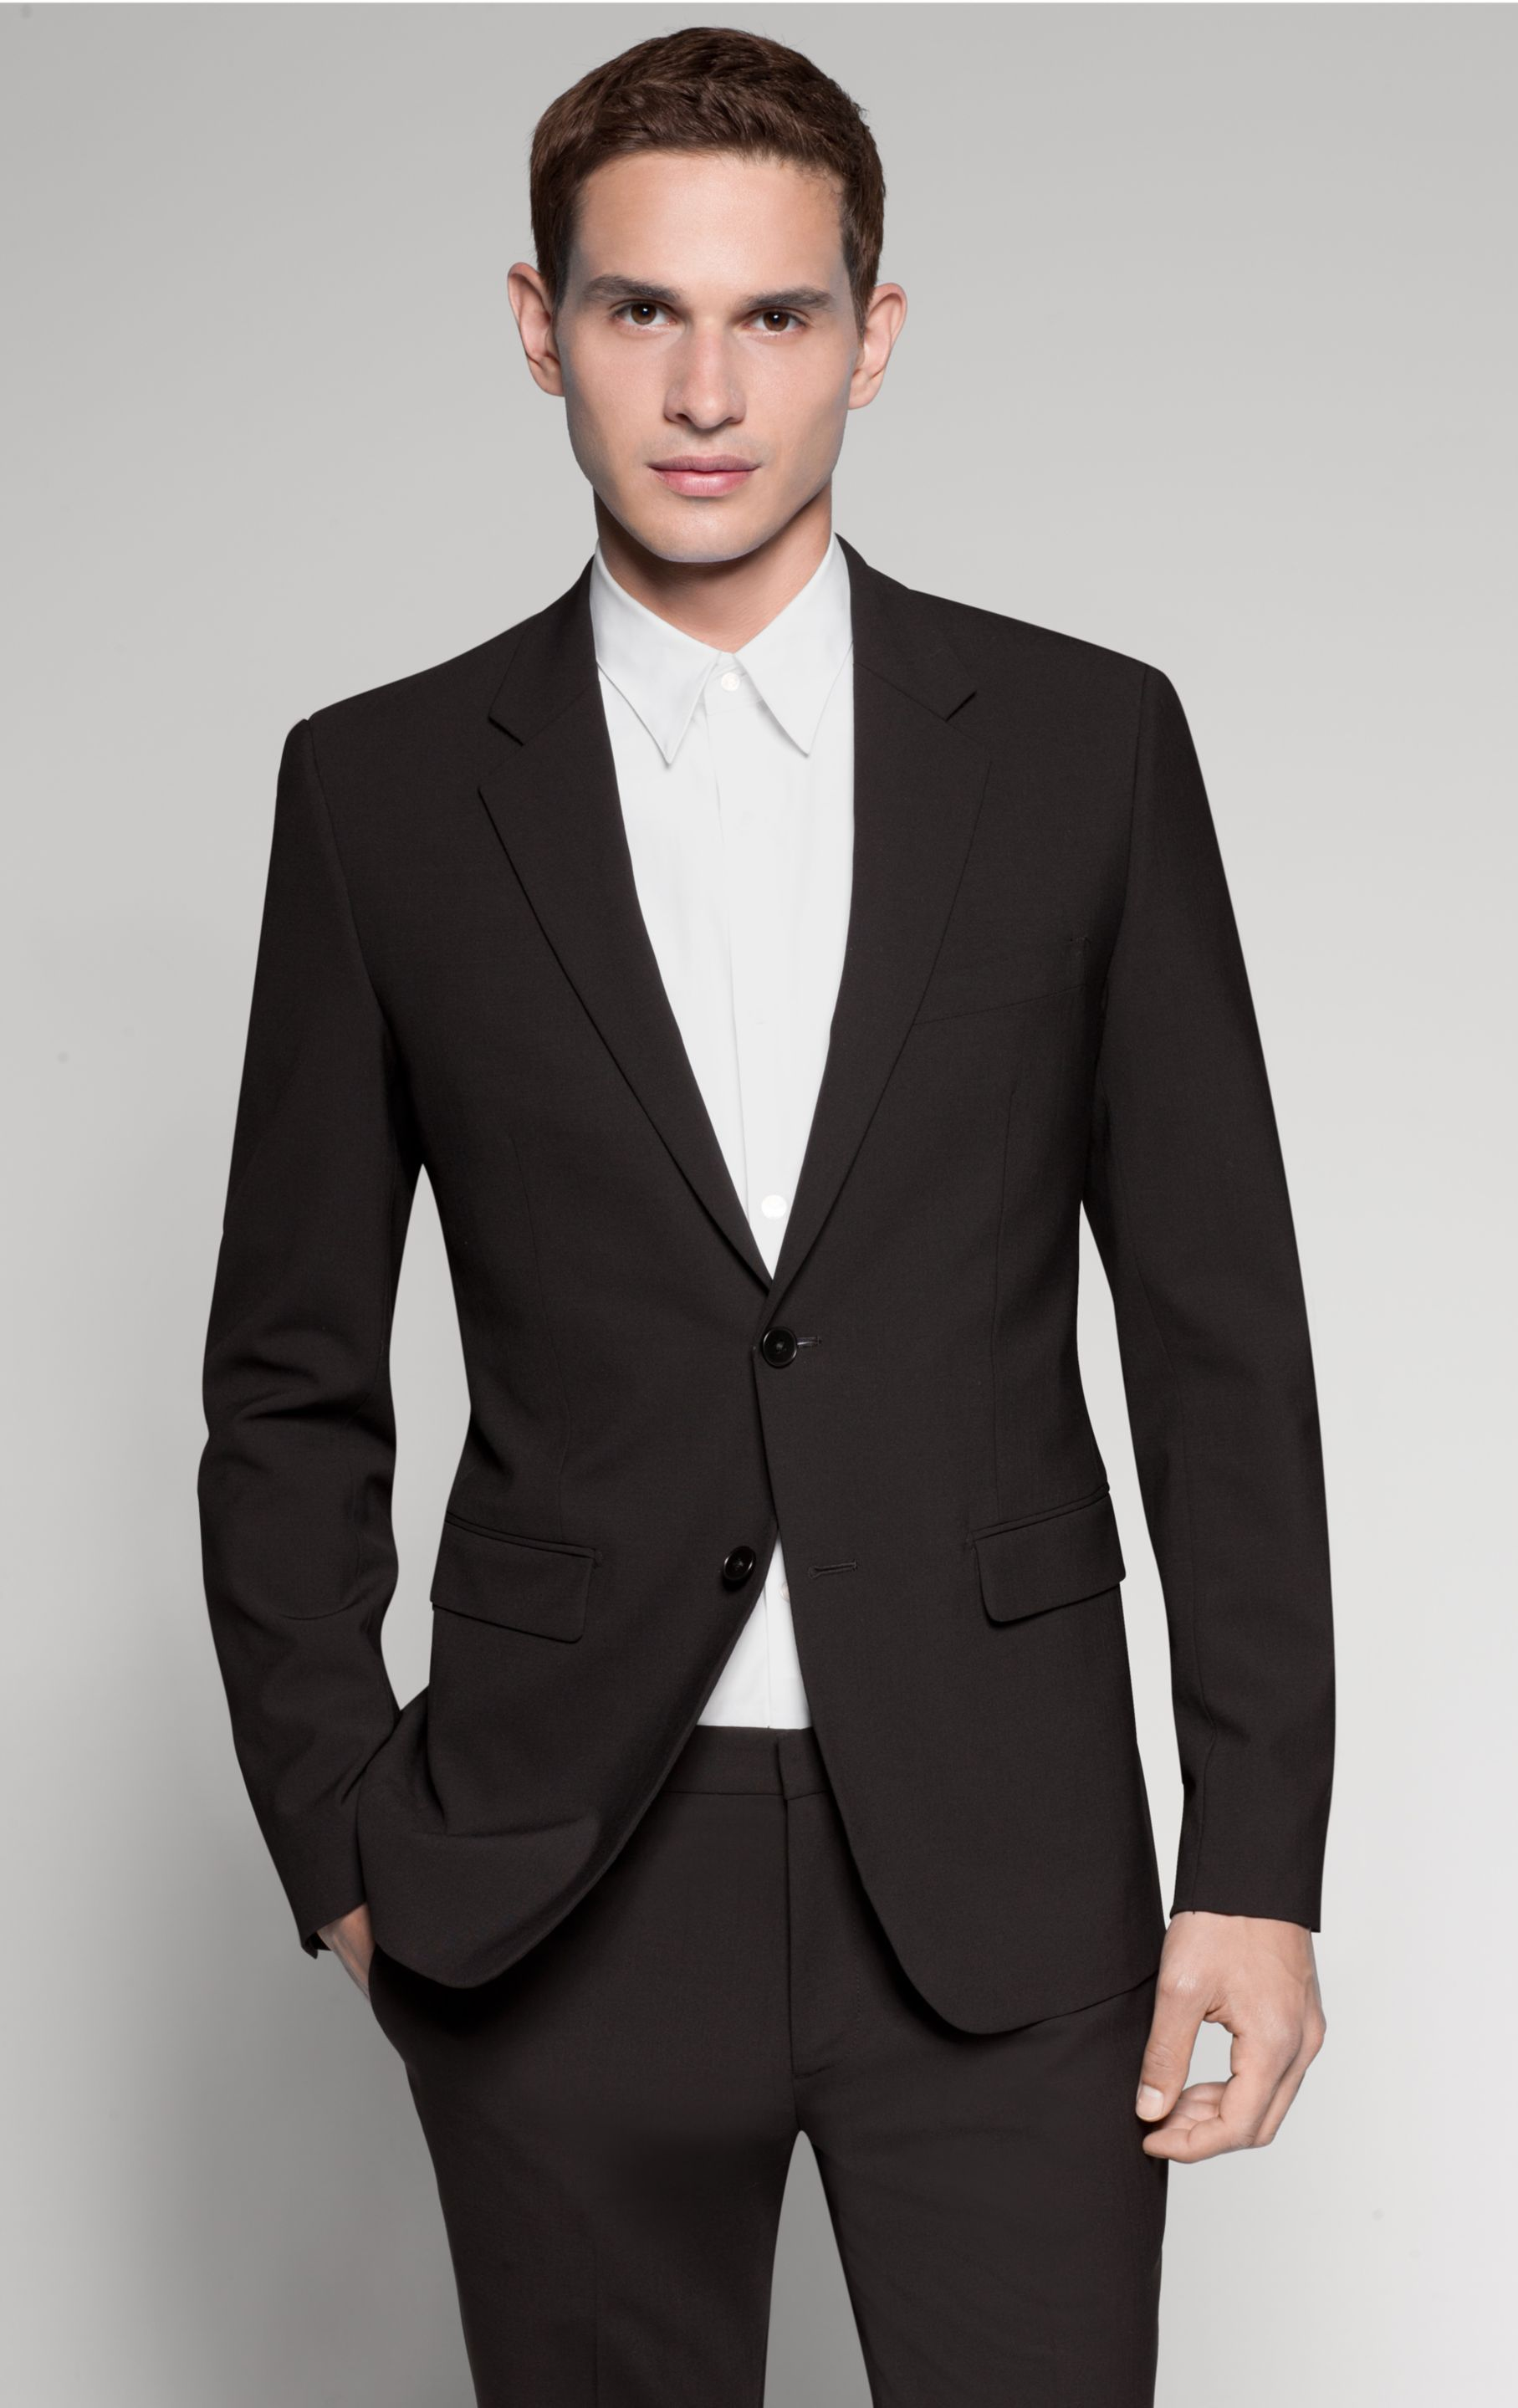 sharp suit, I'd like it with a skinny black tie or a white